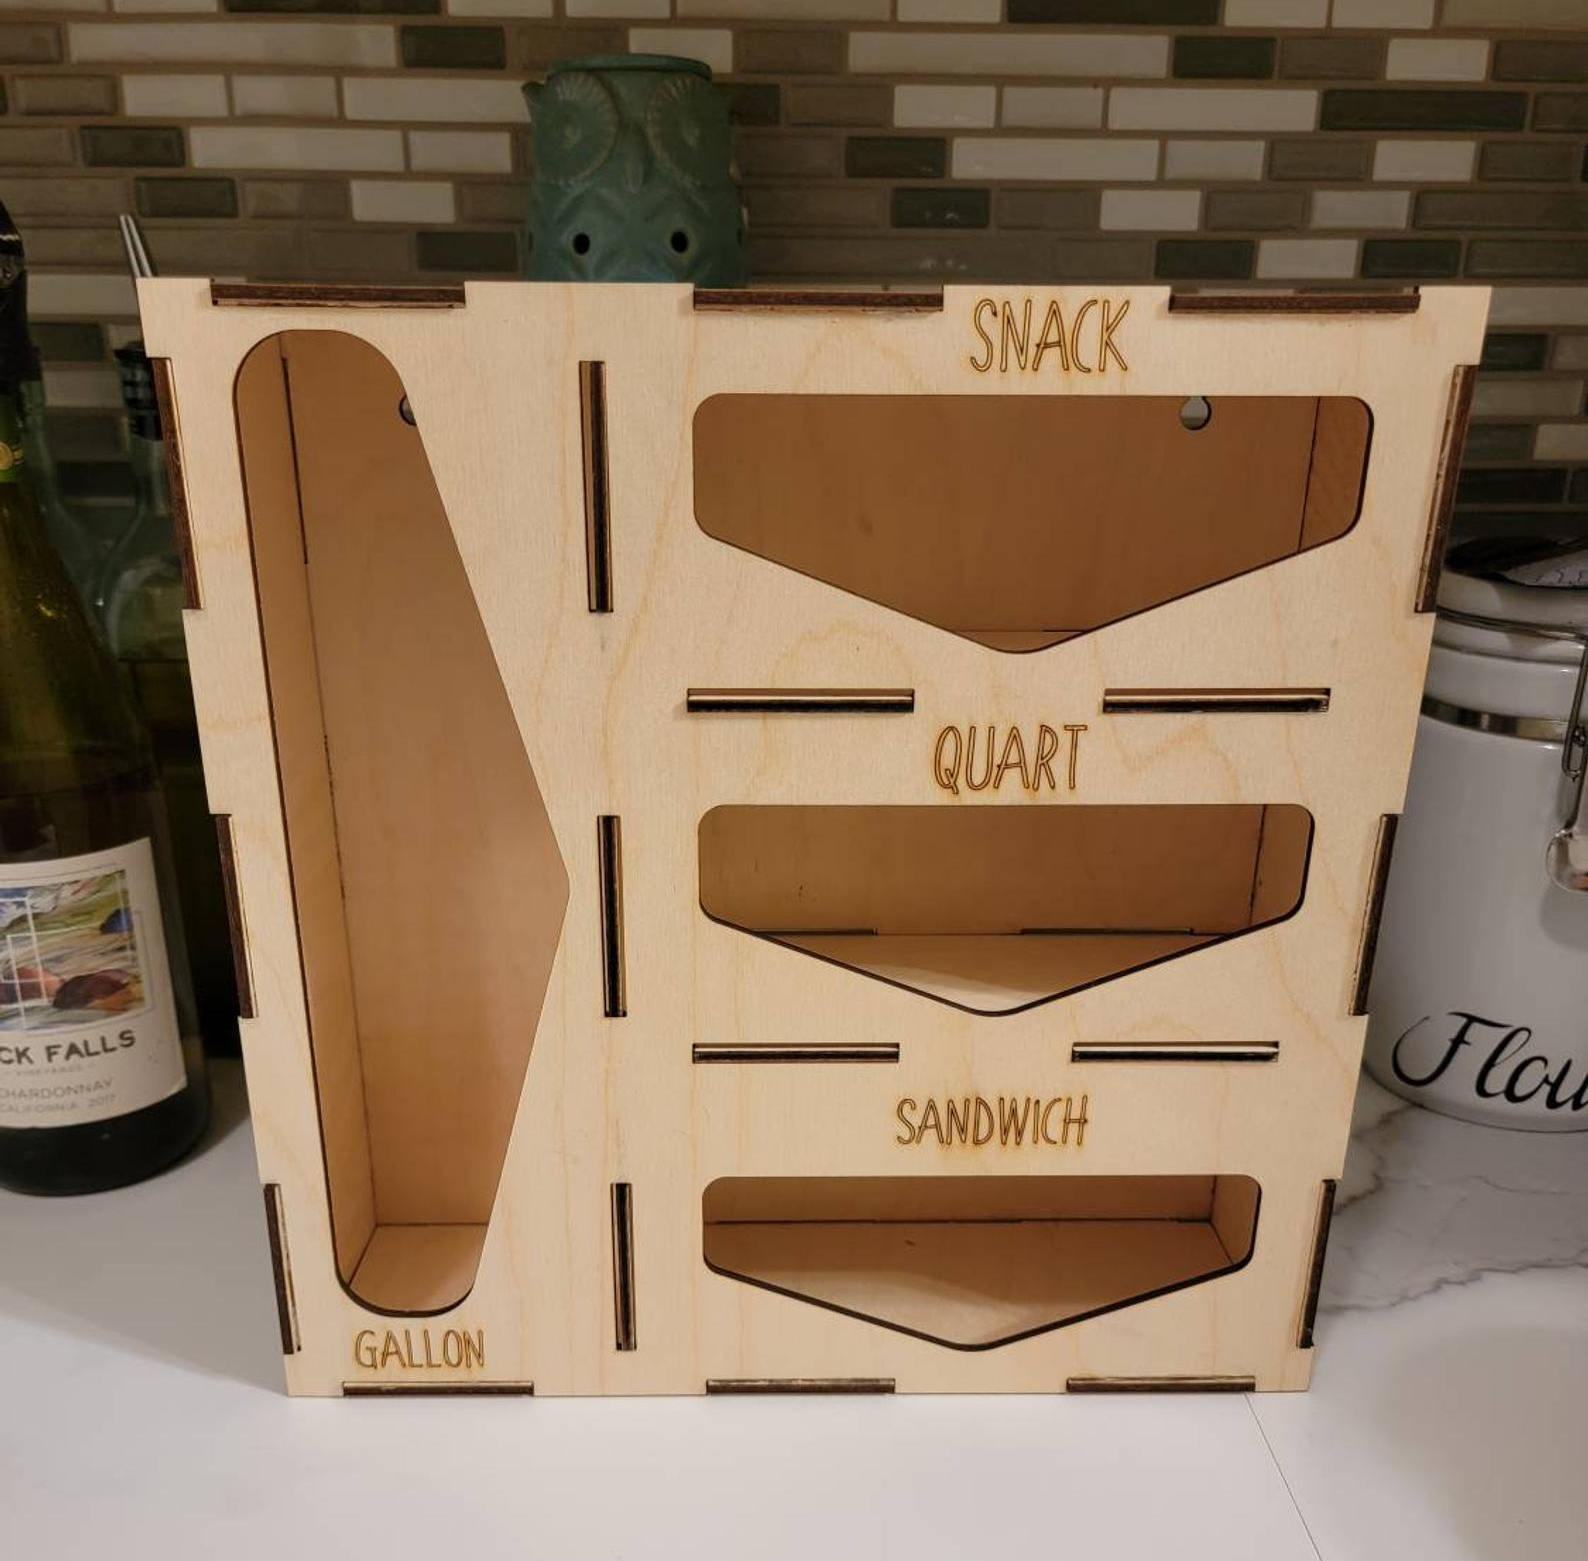 the organizer which has slots for gallon, snack, quart, and sandwich baggies